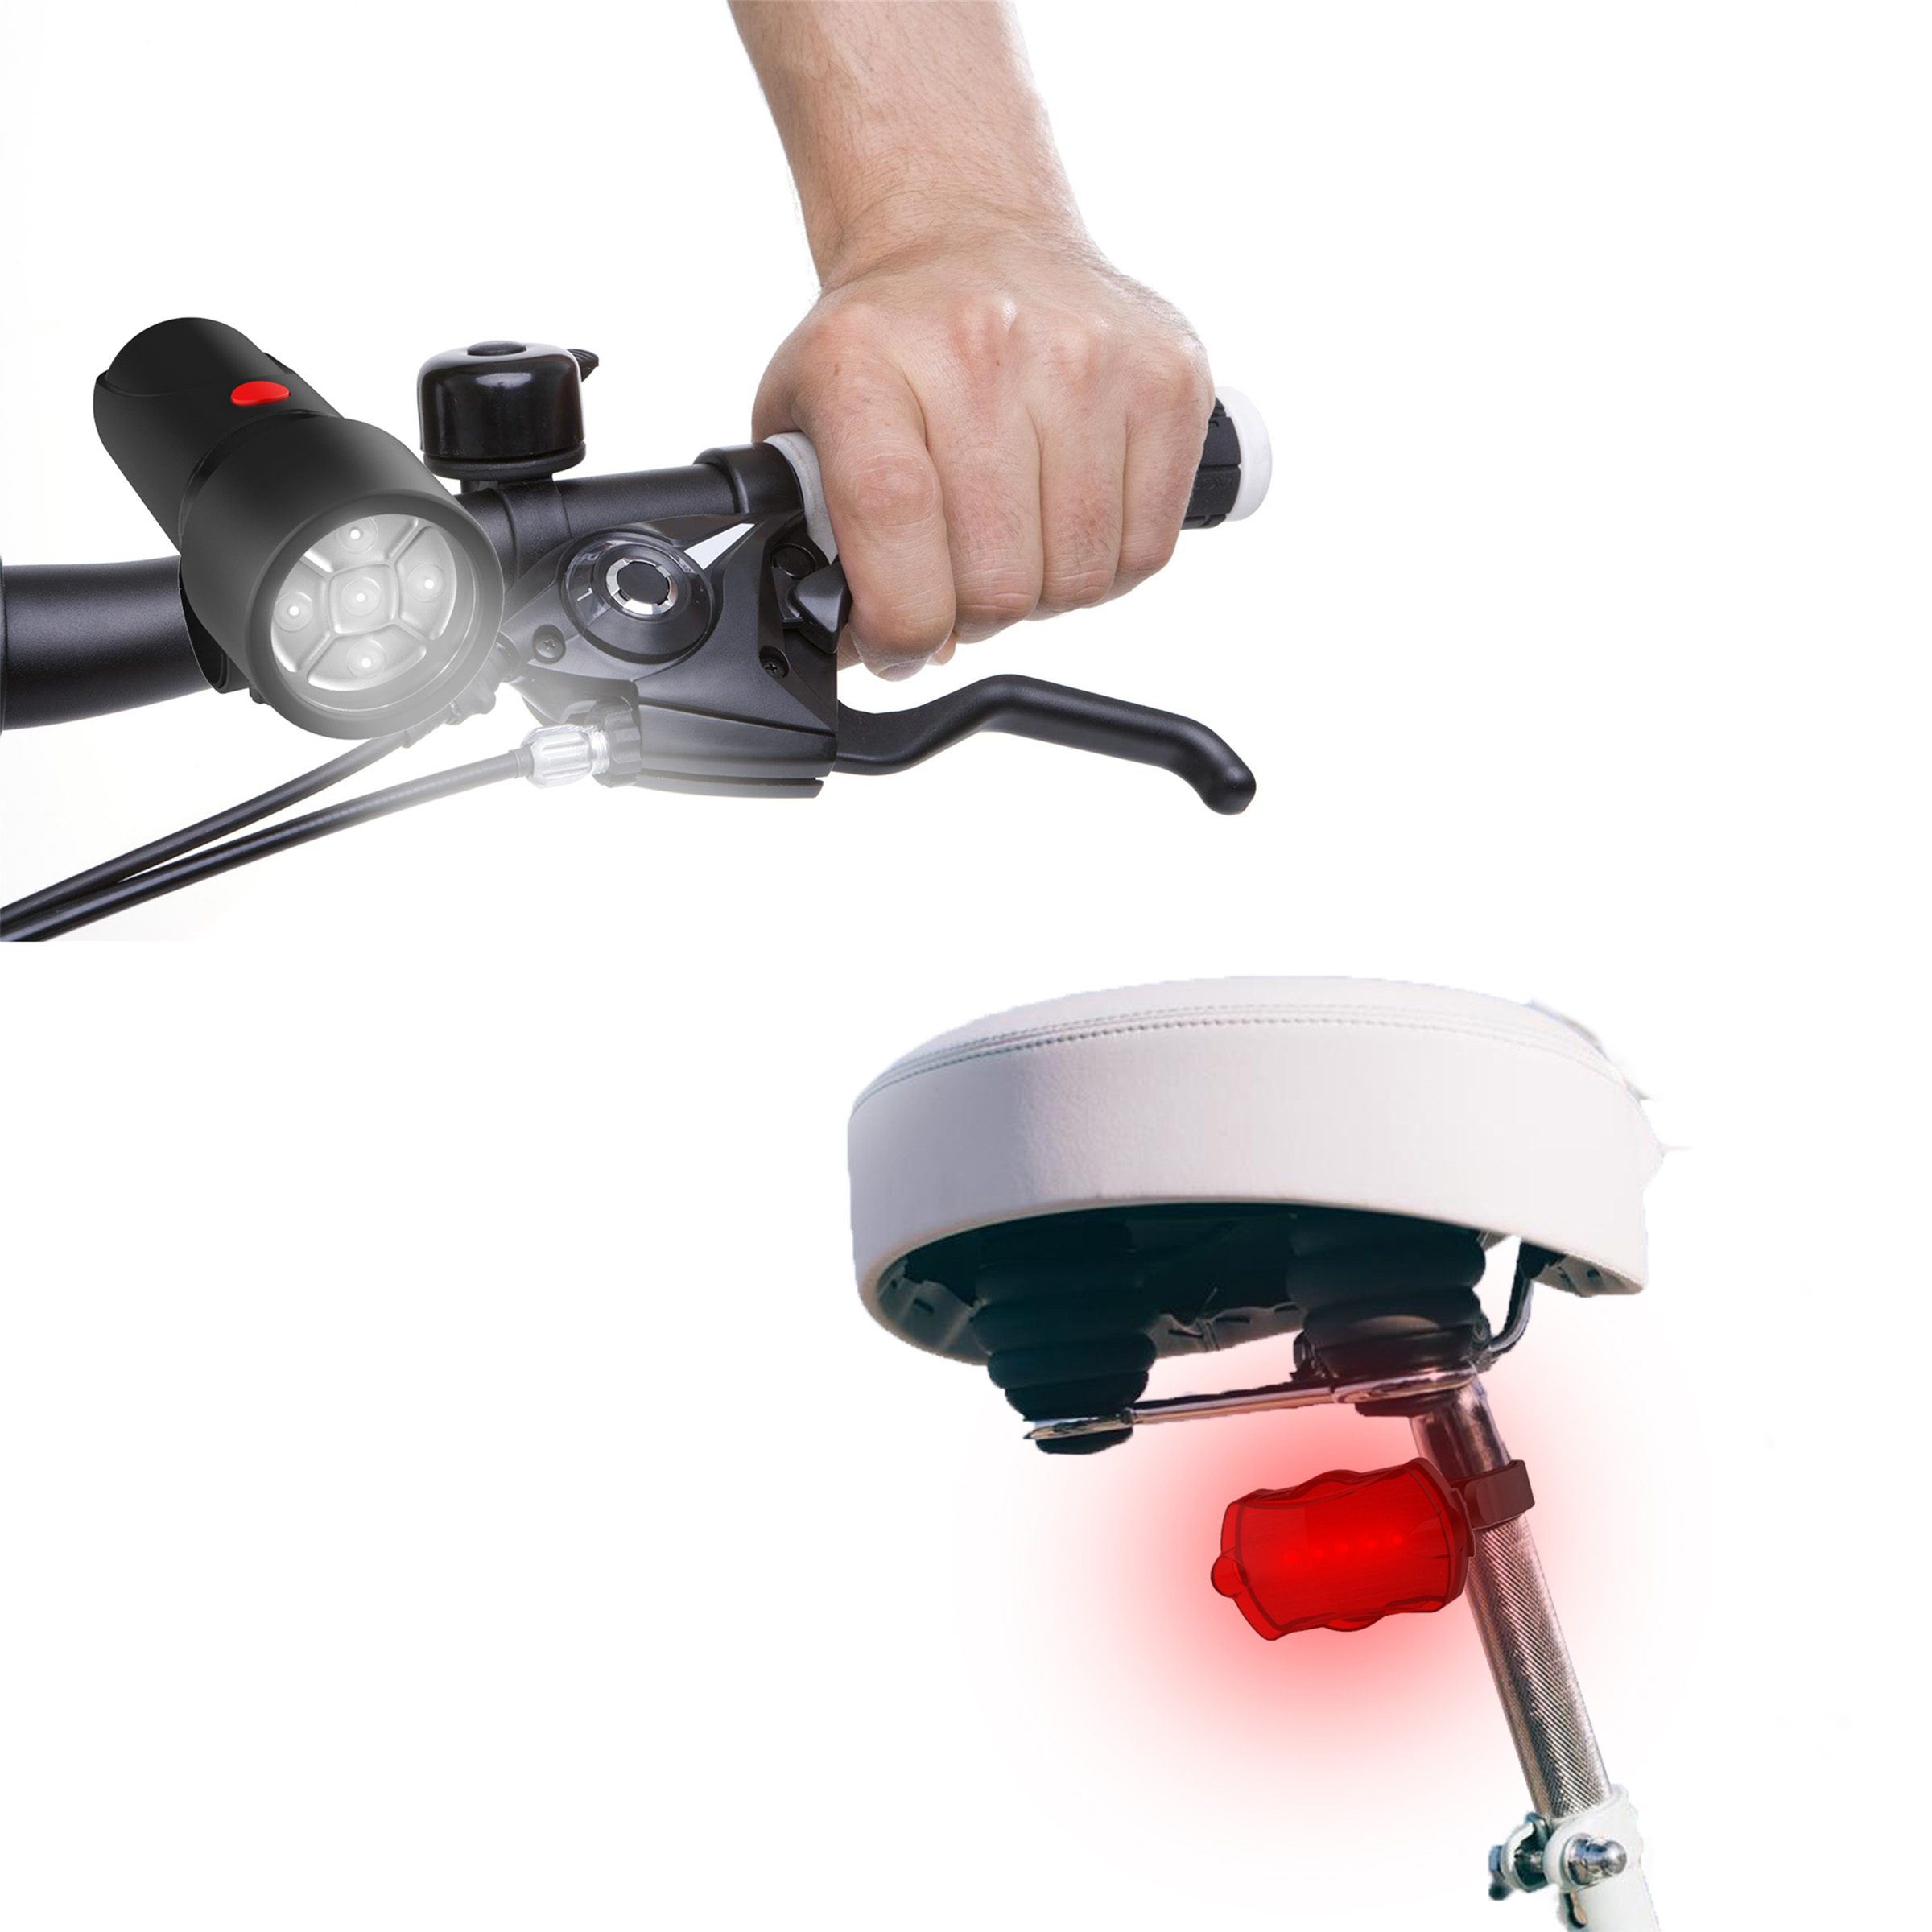 LED Bicycle Lights Set- Water Resistant Bike Front Headlight and Back Tail Light with 5 Flashing Red Light Modes for Biking Safety by Wakeman Outdoors